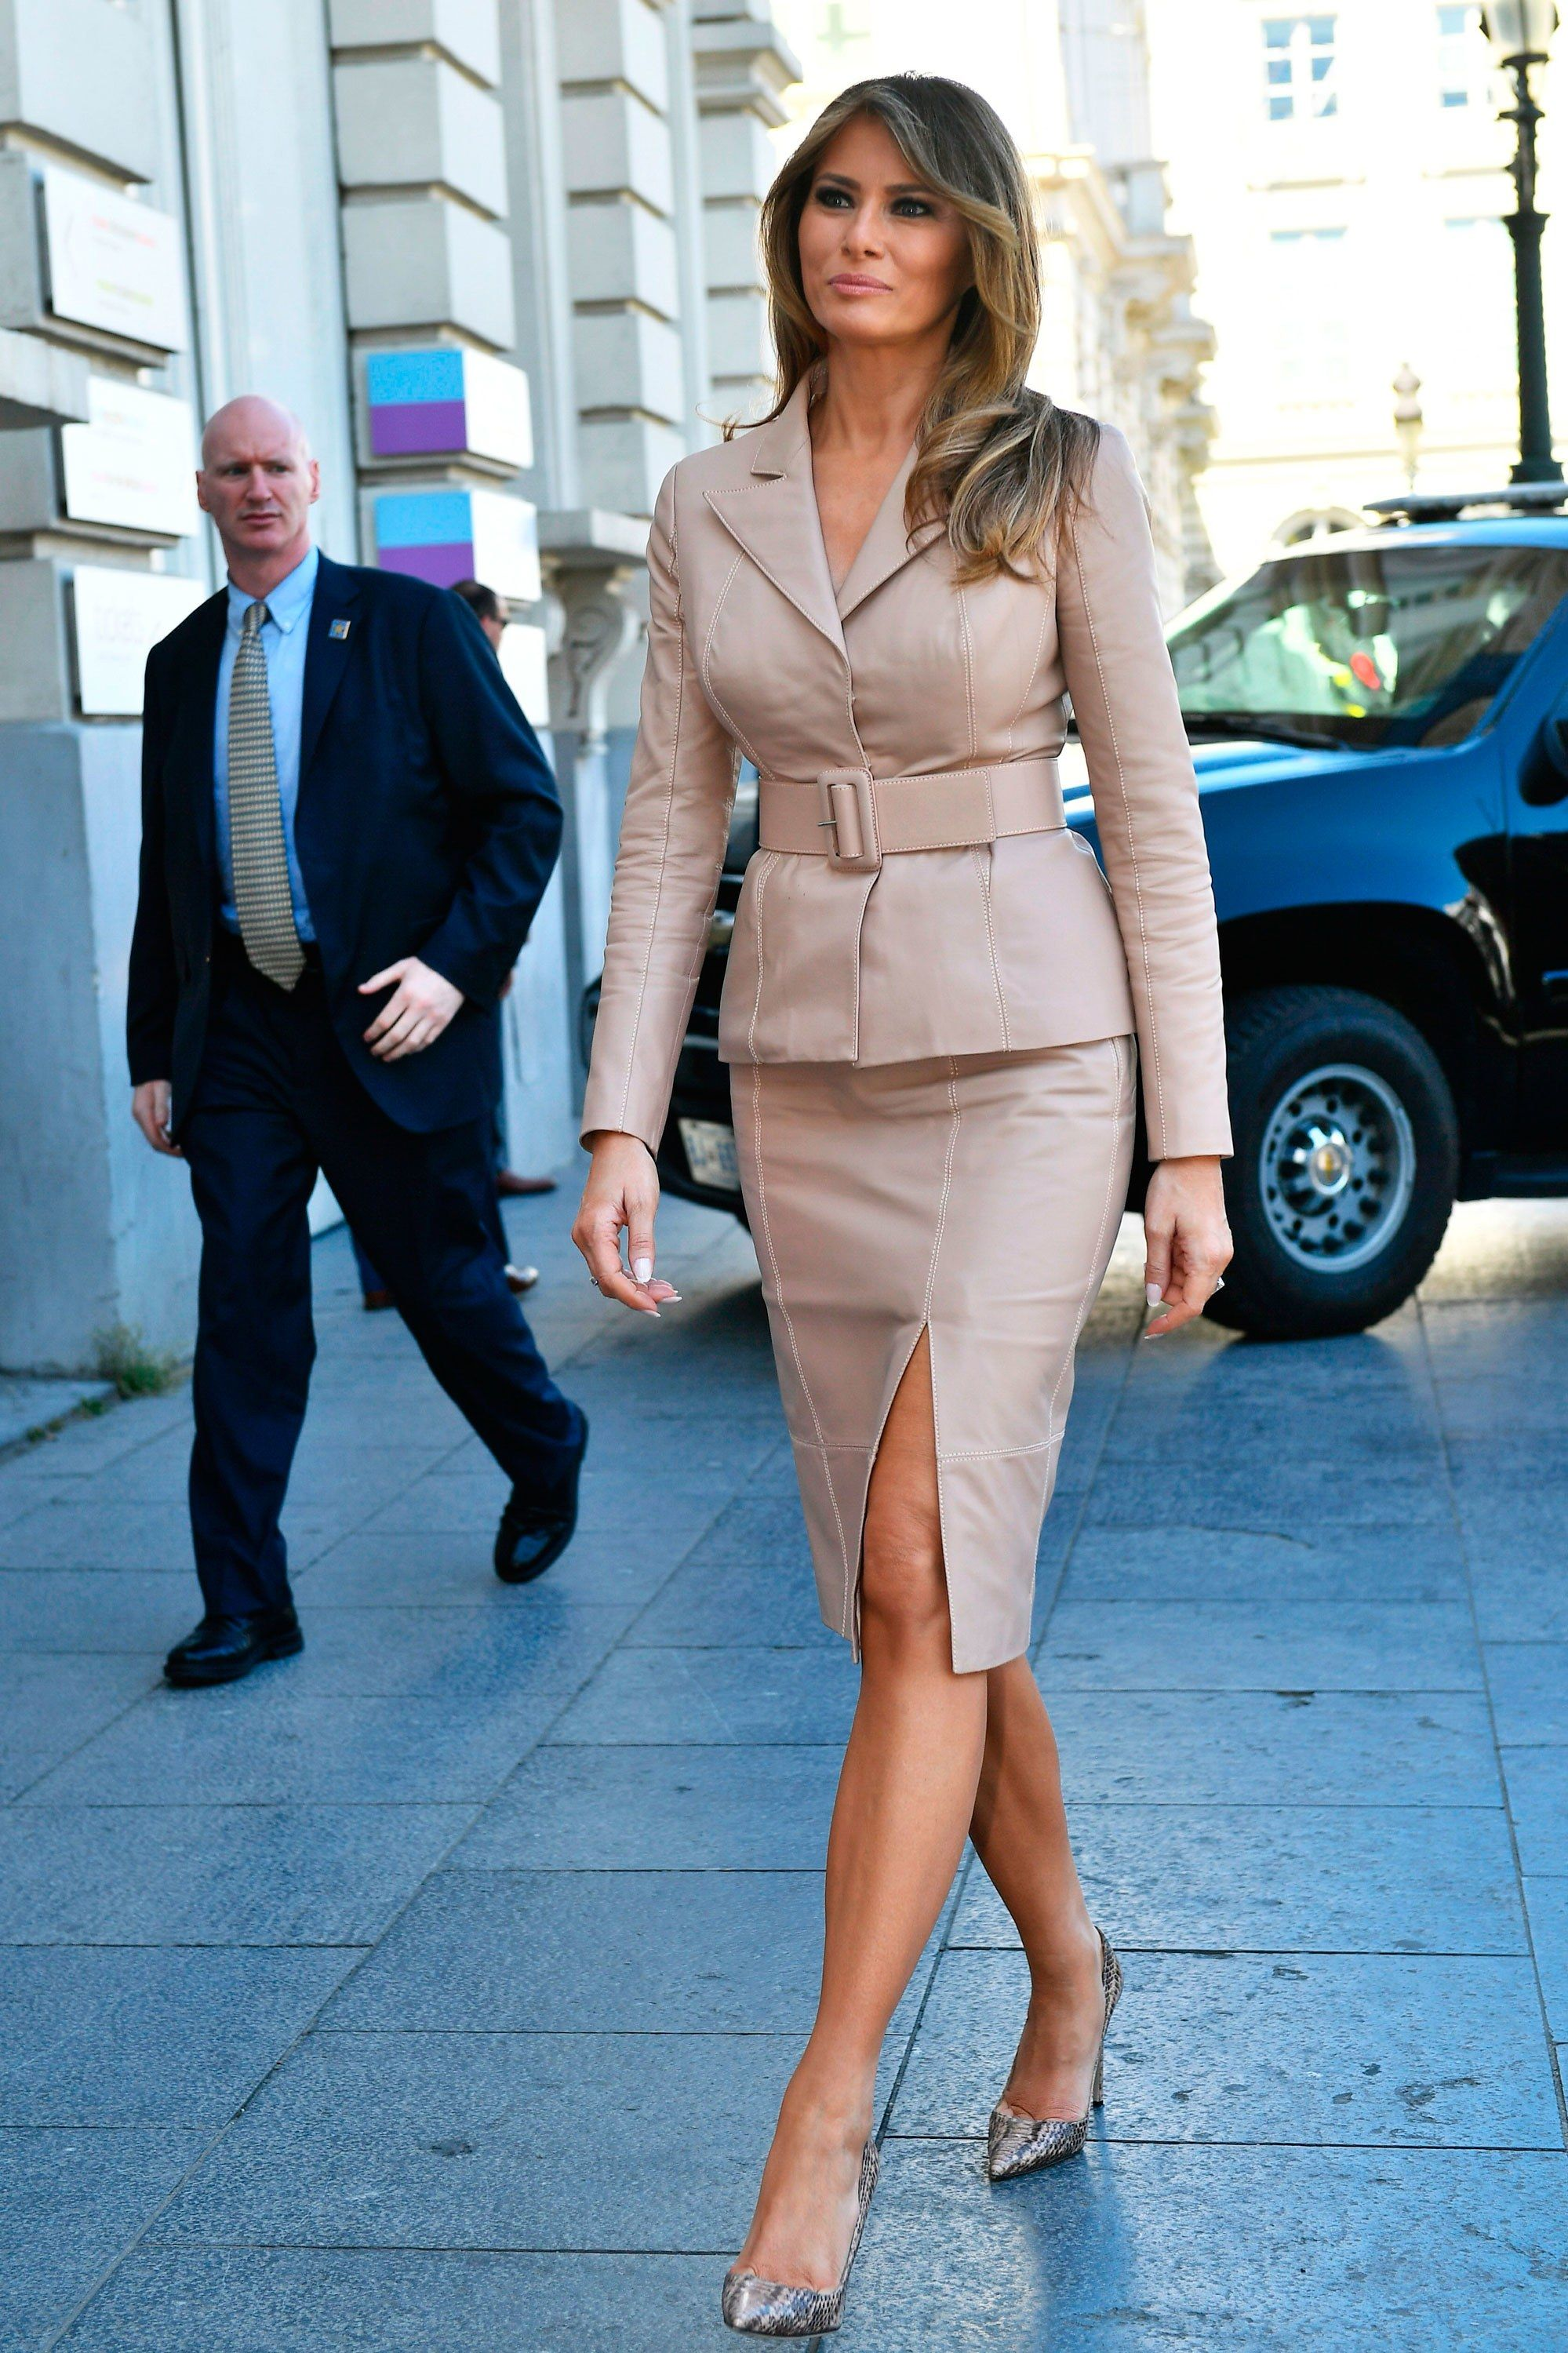 d42970af586e First Lady Melania Trump Wears Maison Ullens in Brussels